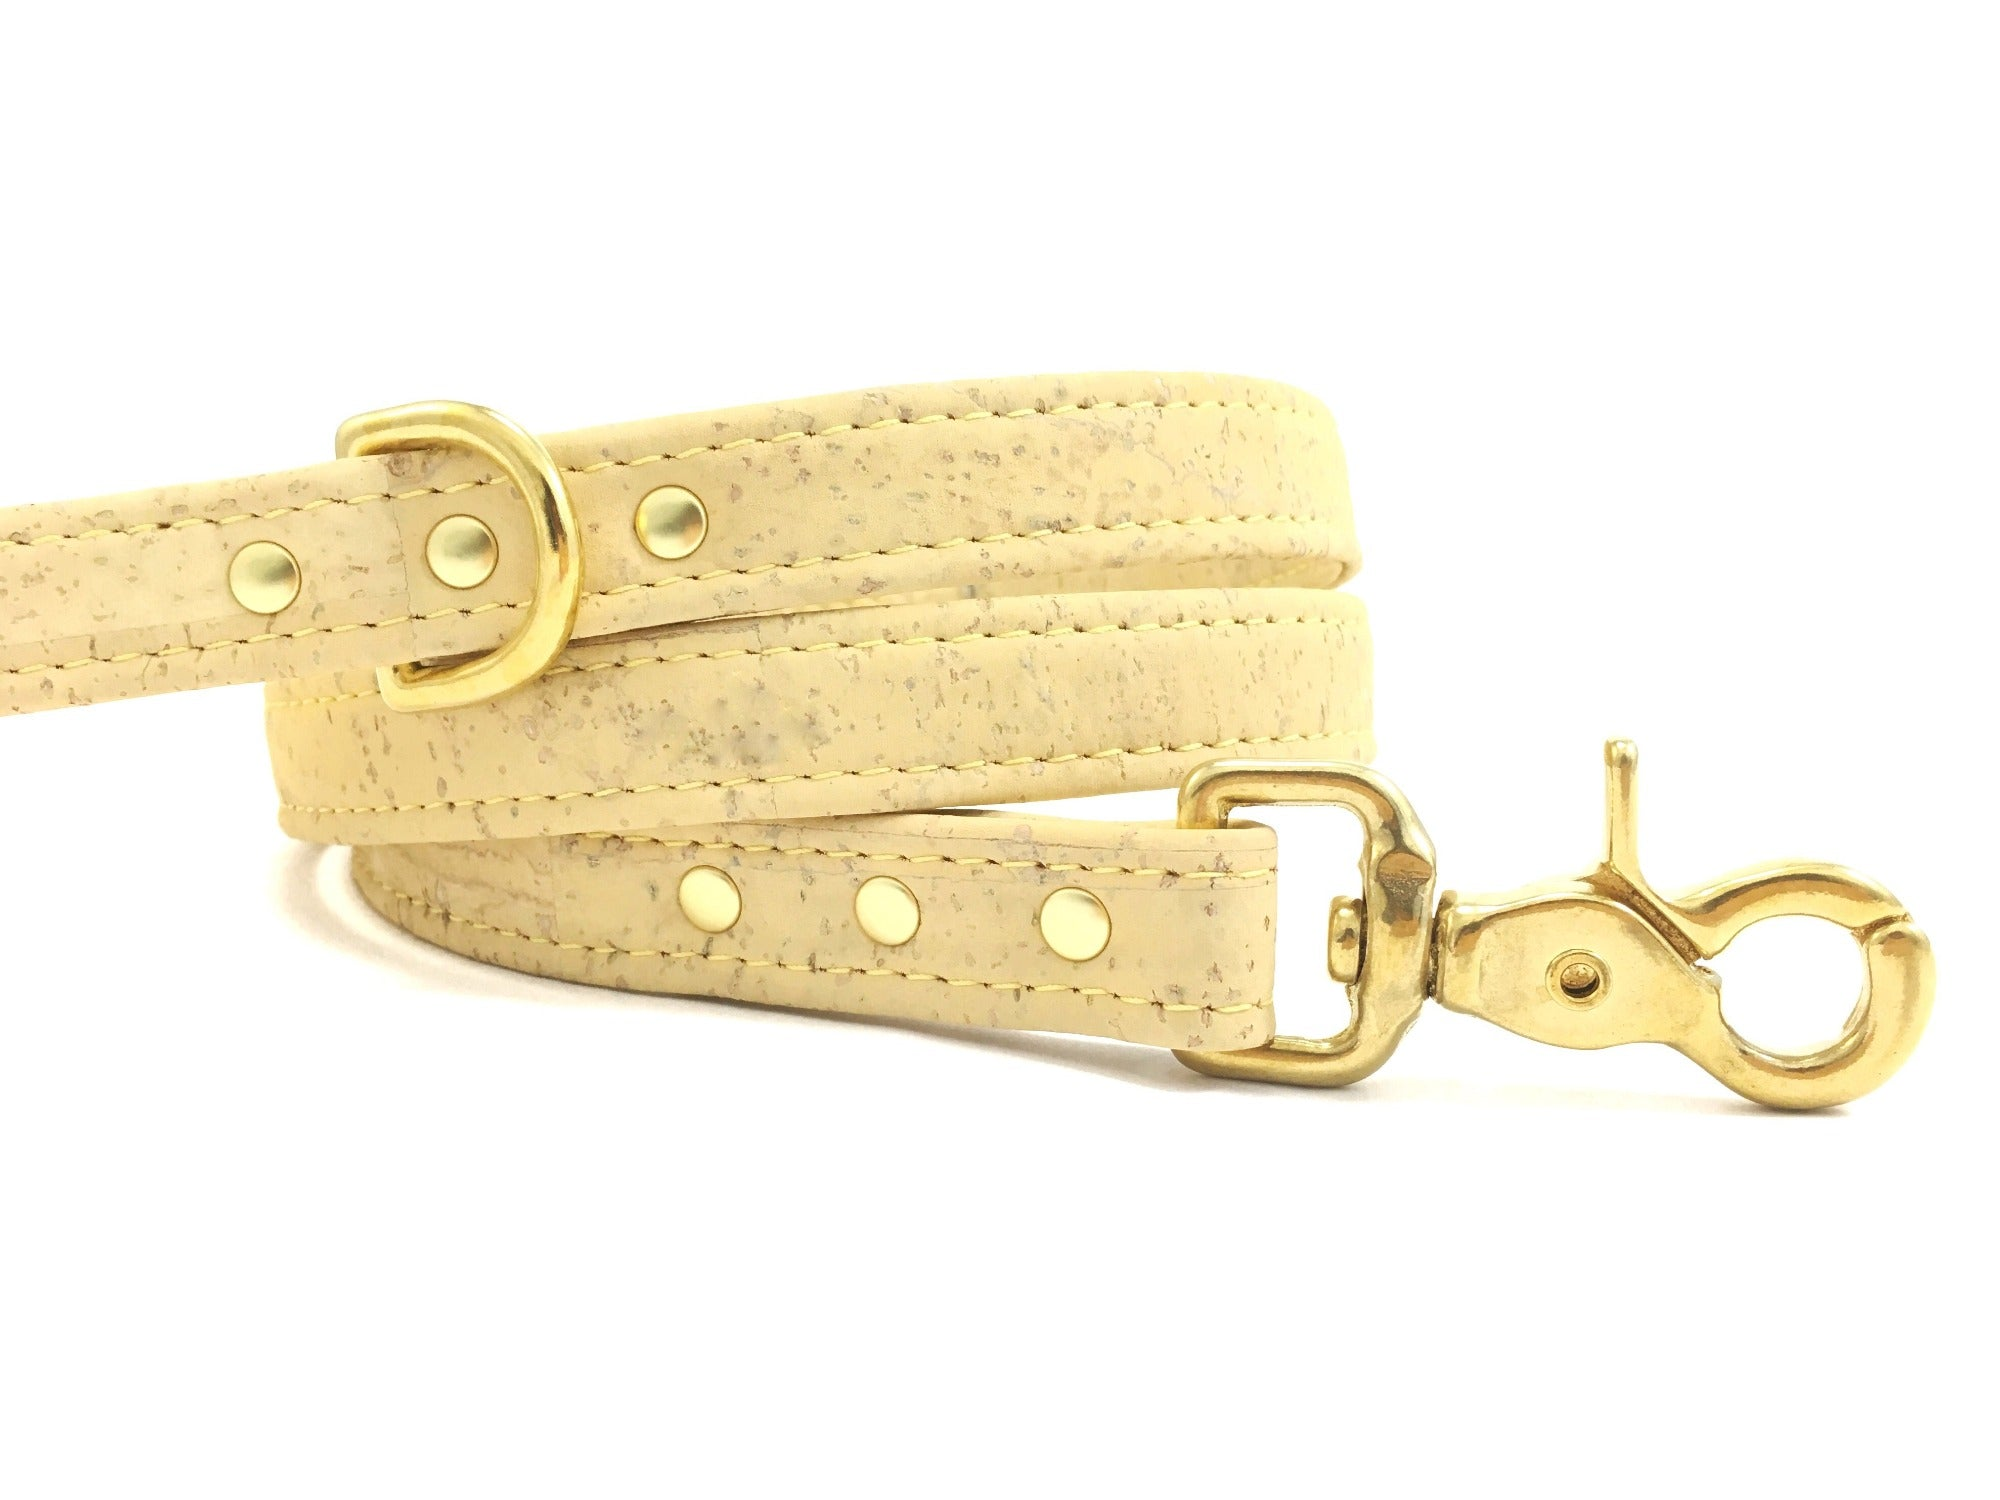 Luxury pastel yellow vegan cork leather dog lead/leash with solid brass trigger snap hook, d ring and rivets